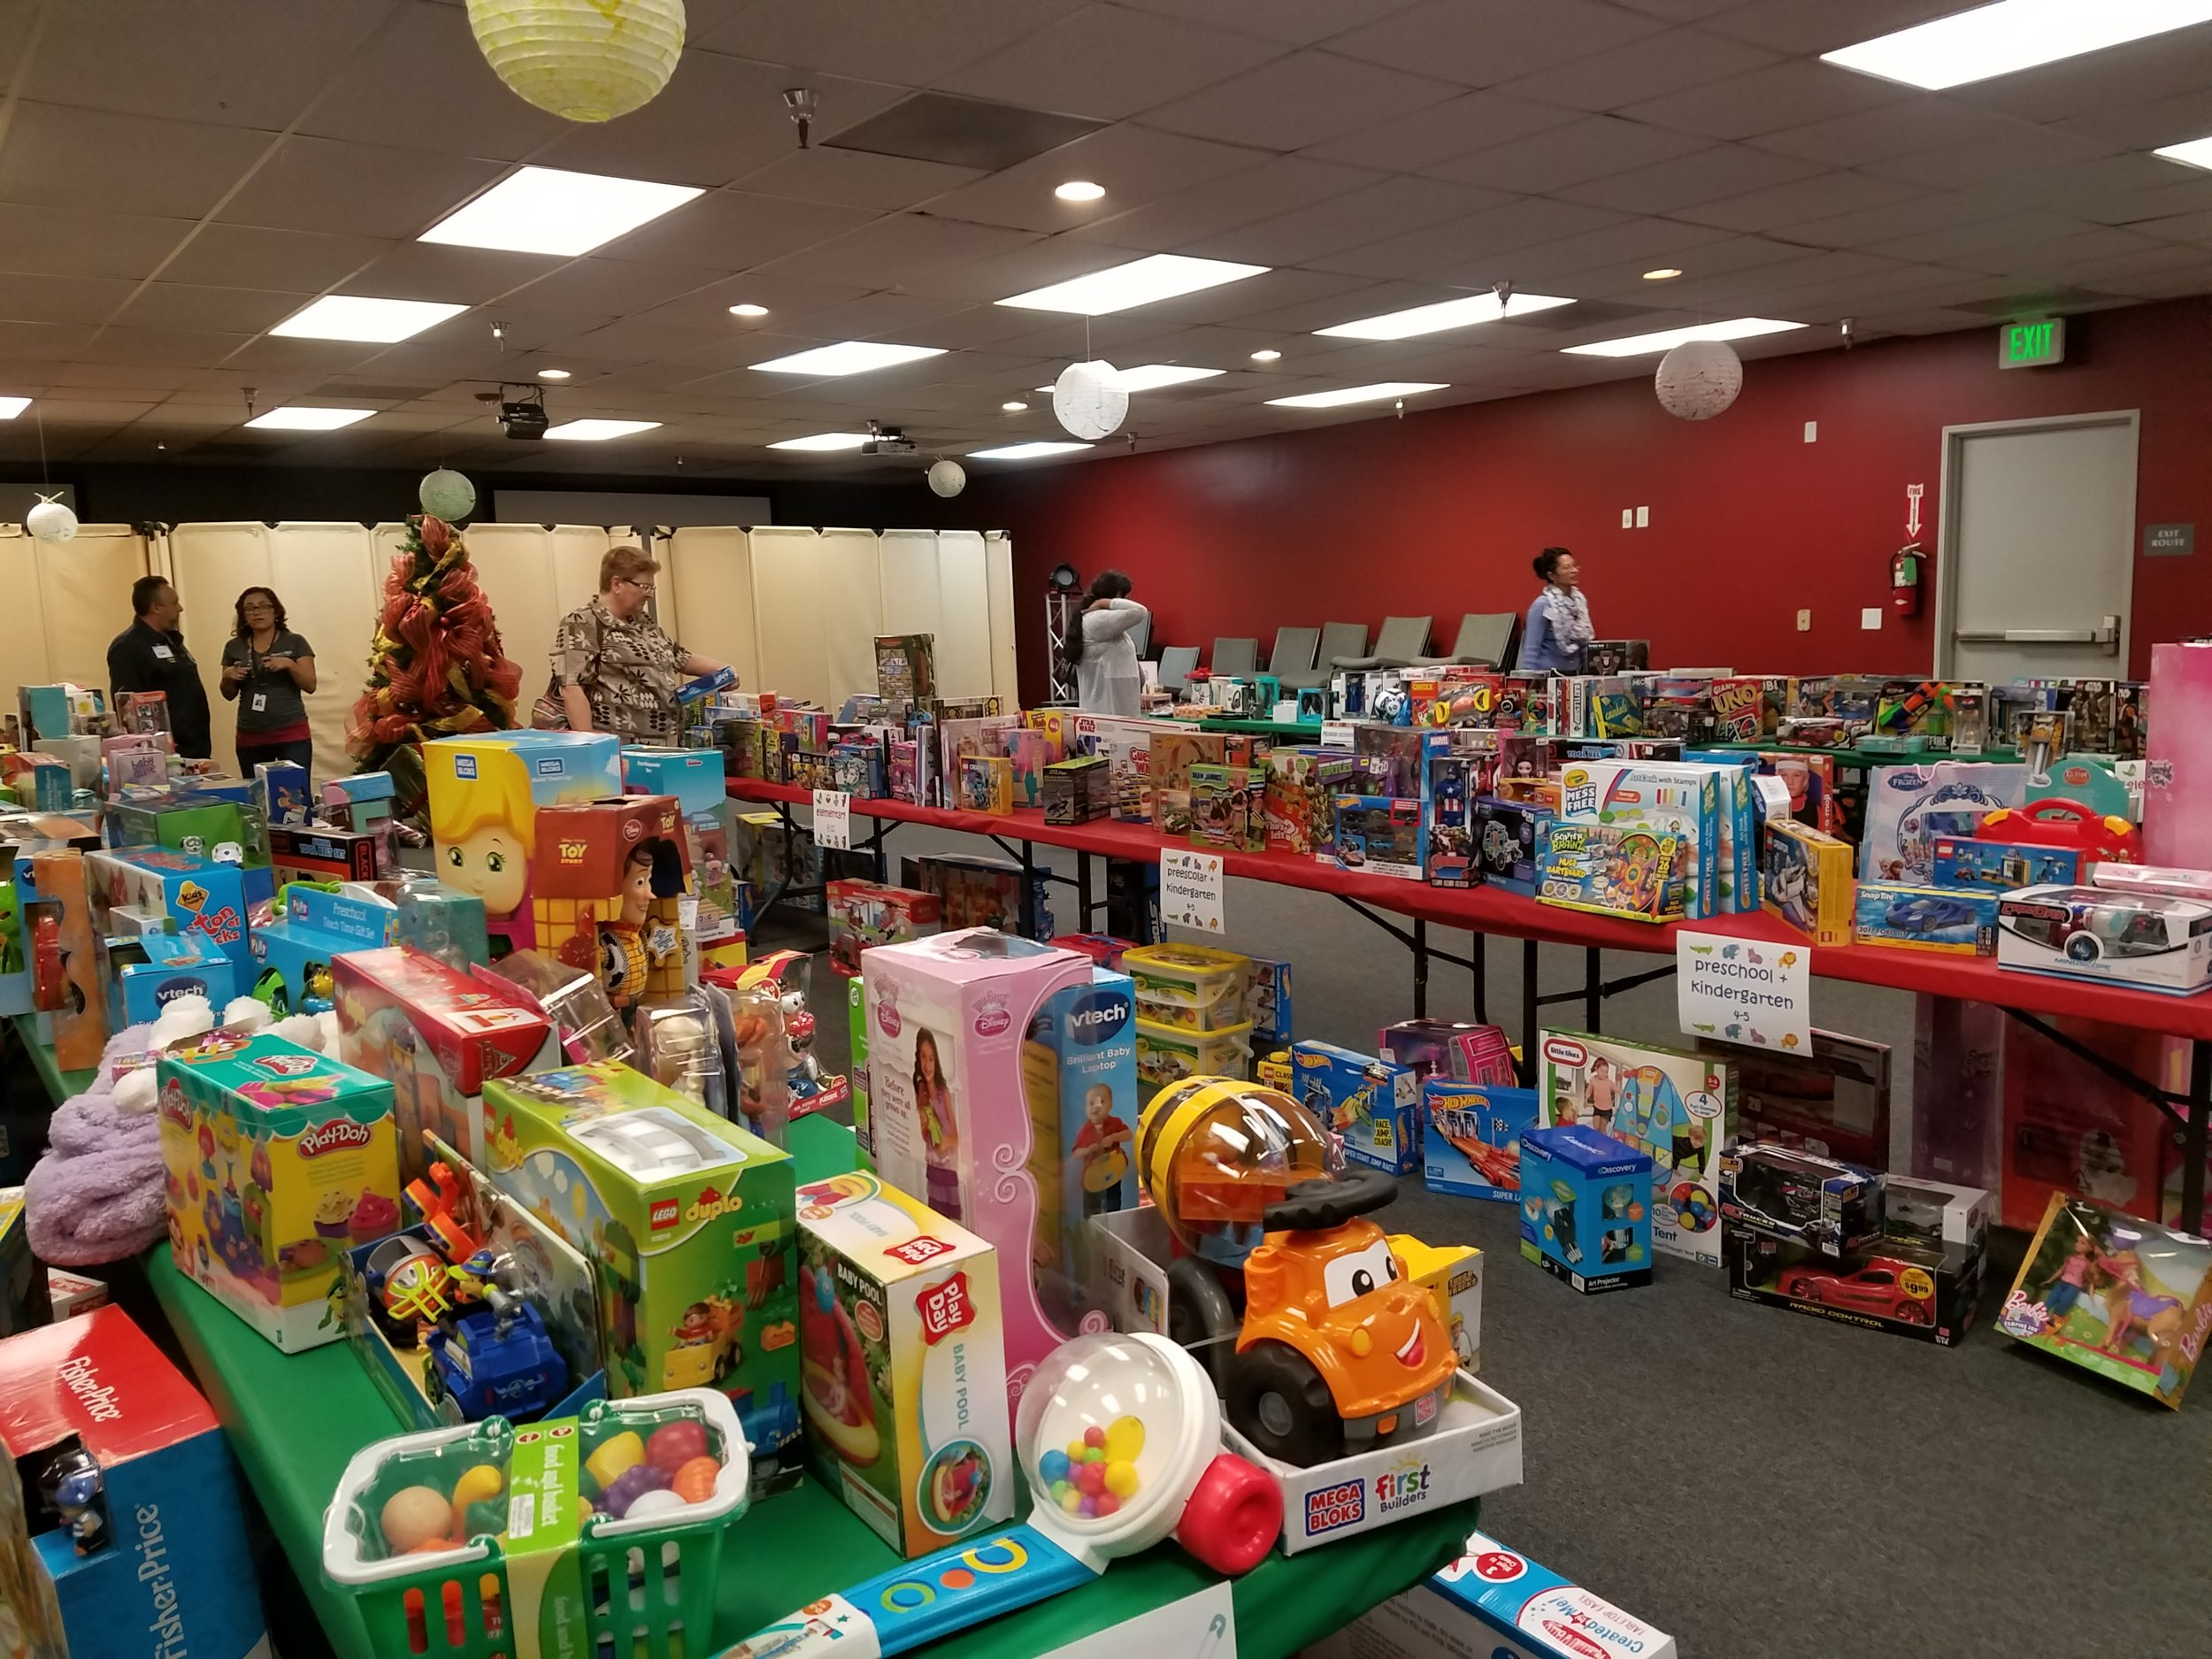 Christmas gifts for foster children in need.